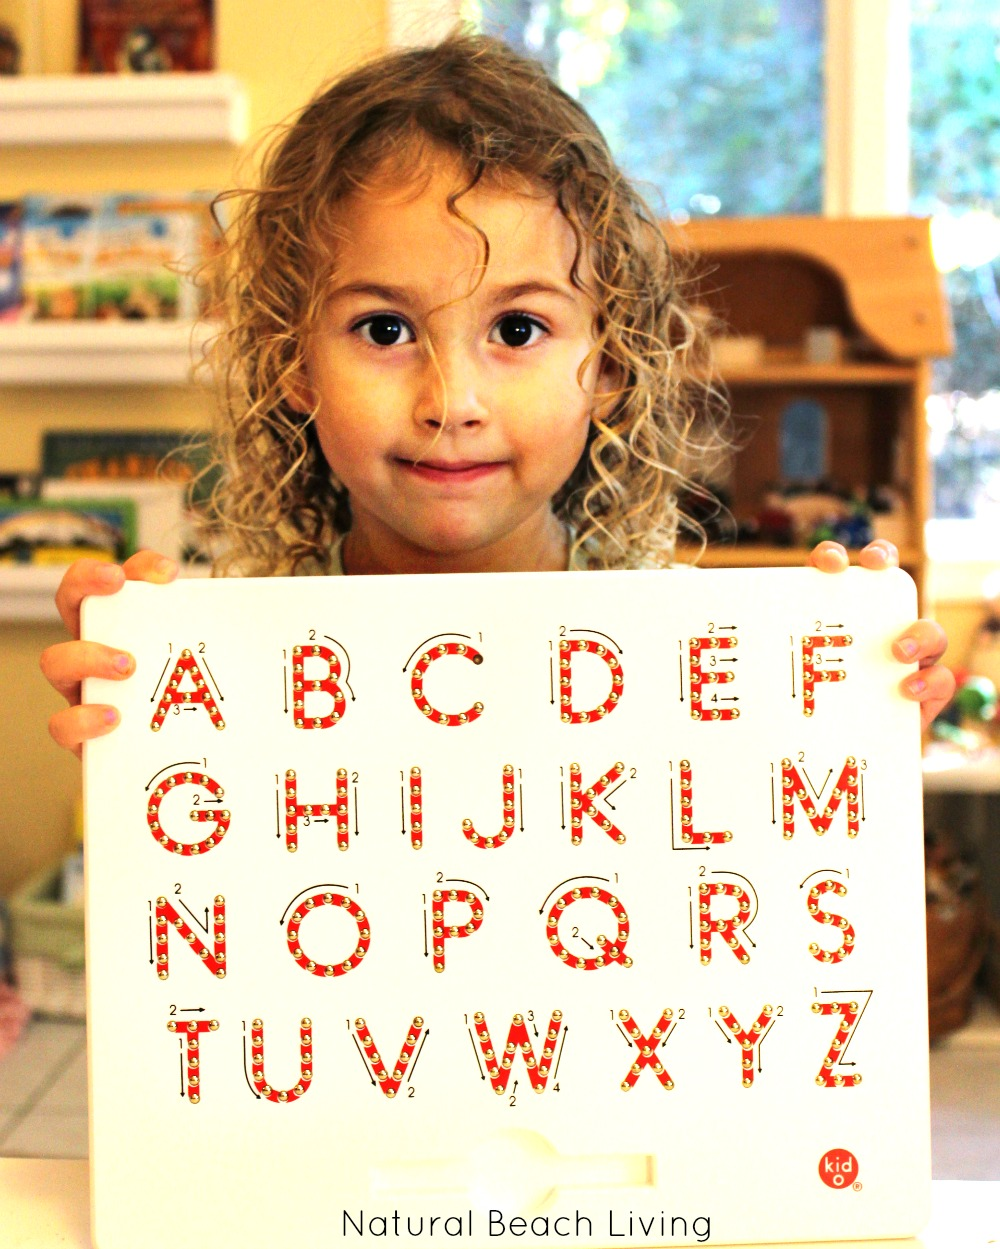 The Magnatab Magnetic Writing Tablet for Preschoolers, Timberdoodle curriculum for preschool, Alphabet activities and learning tools, Preschool at home.